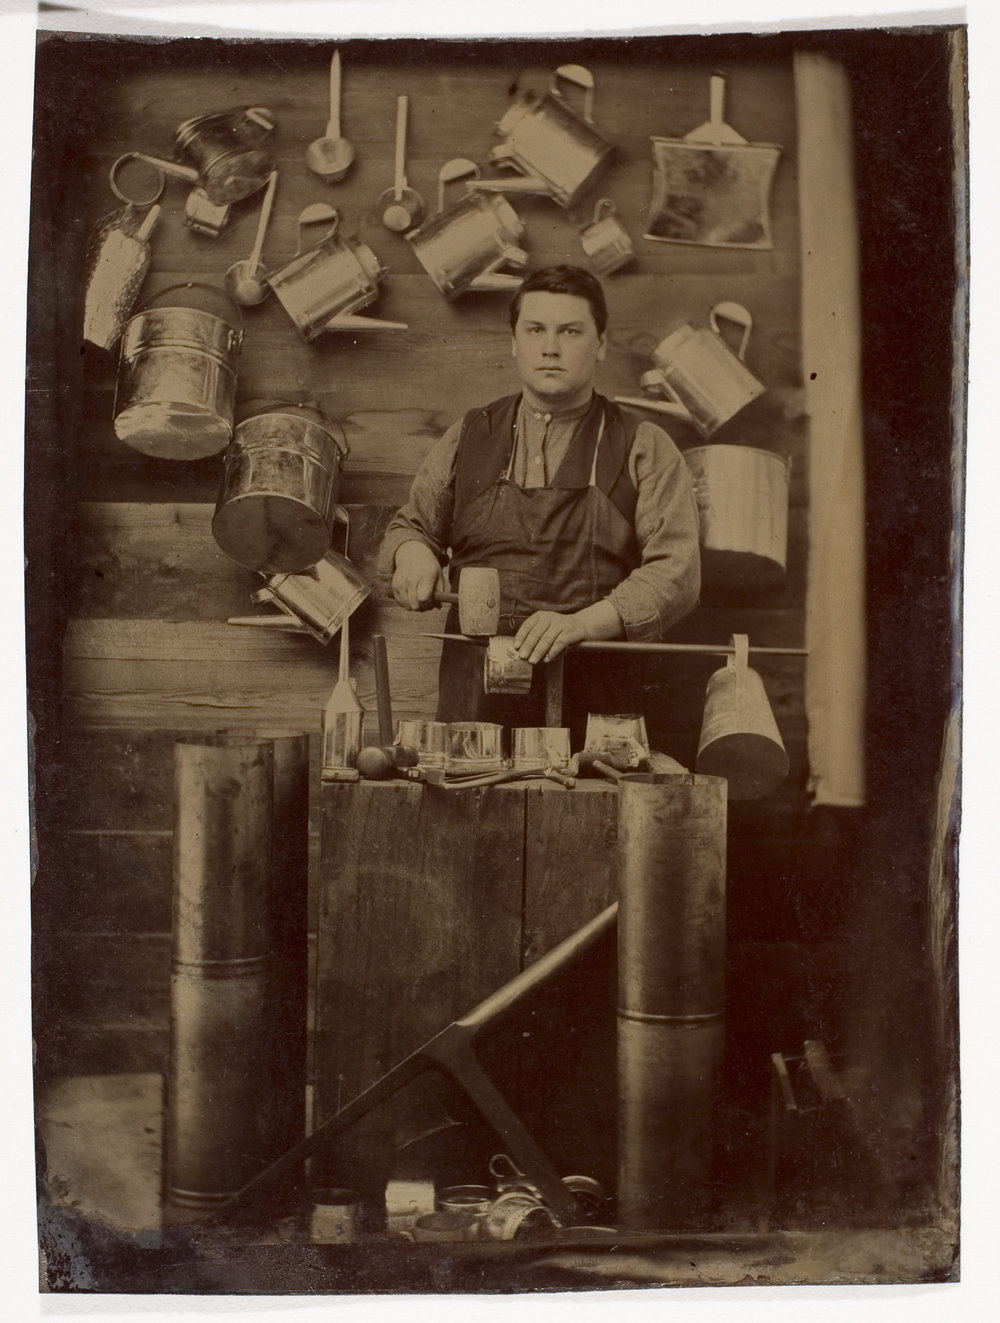 Unidentified Photographer, [Tinsmith],  ca. 1870. International Center of Photography, Gift of Steven Kasher and Susan Spungen Kasher, 2008 (2008.81.10)